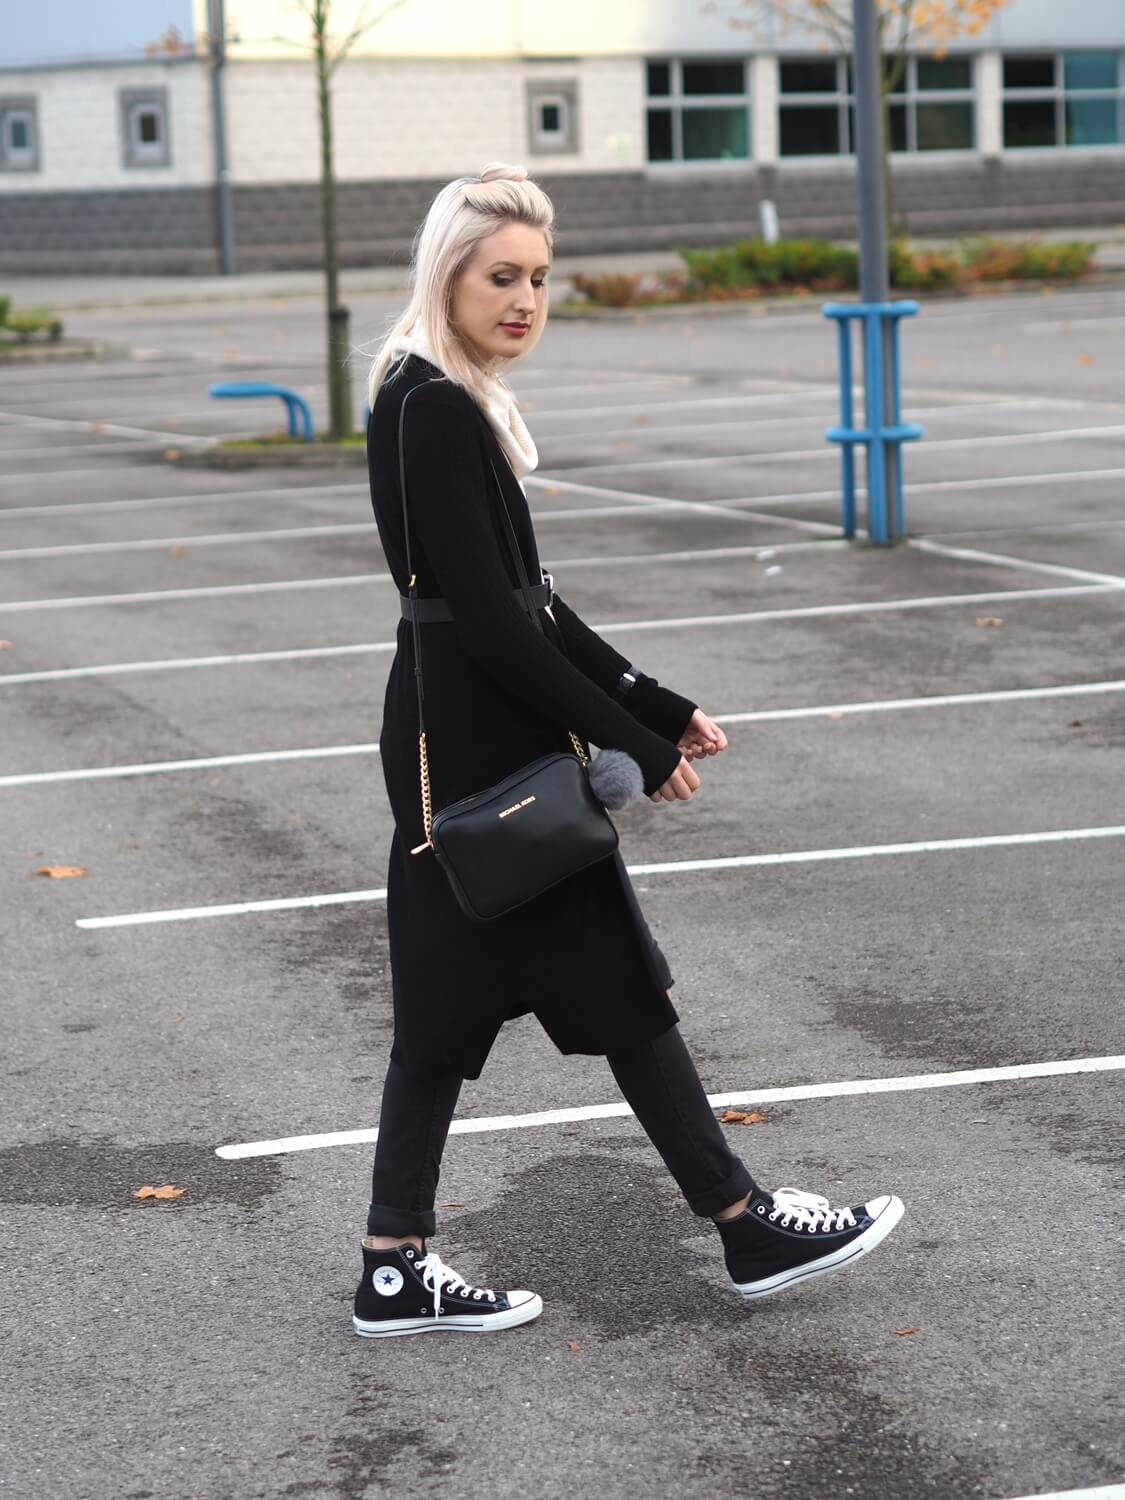 HOW TO LOOK COOL IN BLACK CONVERSE